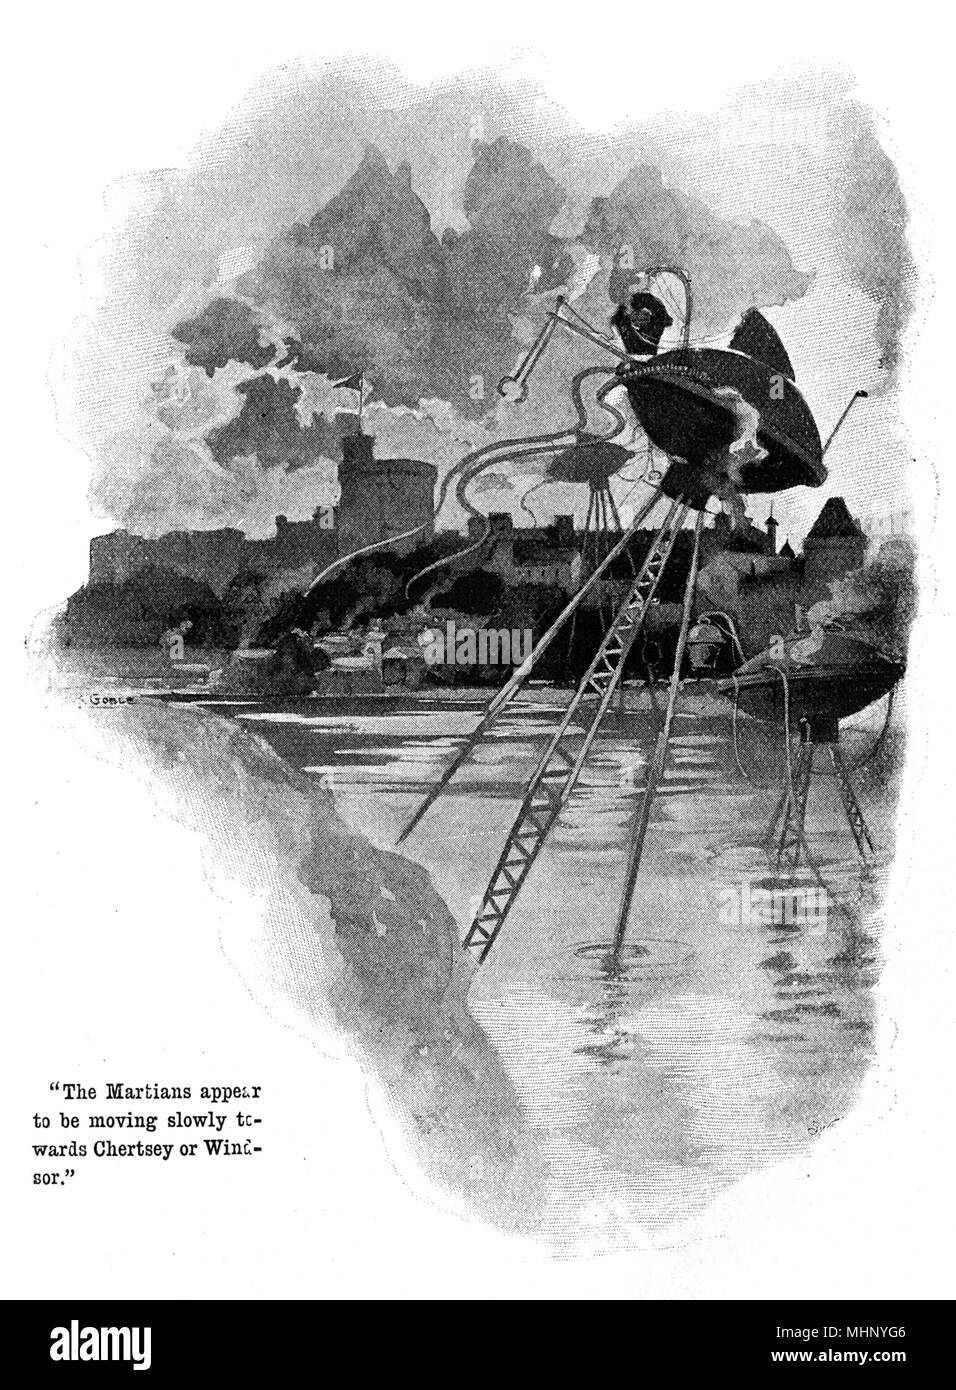 The Martian's fighting machines moving slowly up the River Thames towards Chertsey and Windsor (Windsor Castle in the background). War of the Worlds is a science fiction novel by English author H. G. Wells (1866-1946). This plate comes from the first serialised version, published in 1897 by Pearson's Magazine in the UK.     Date: 1897 - Stock Image